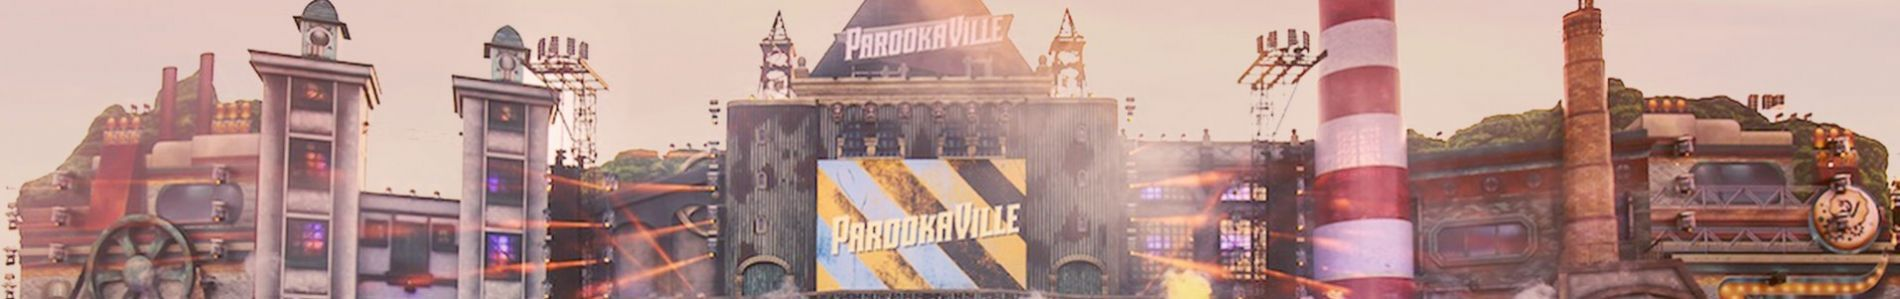 Win a trip & tickets to Parookaville!